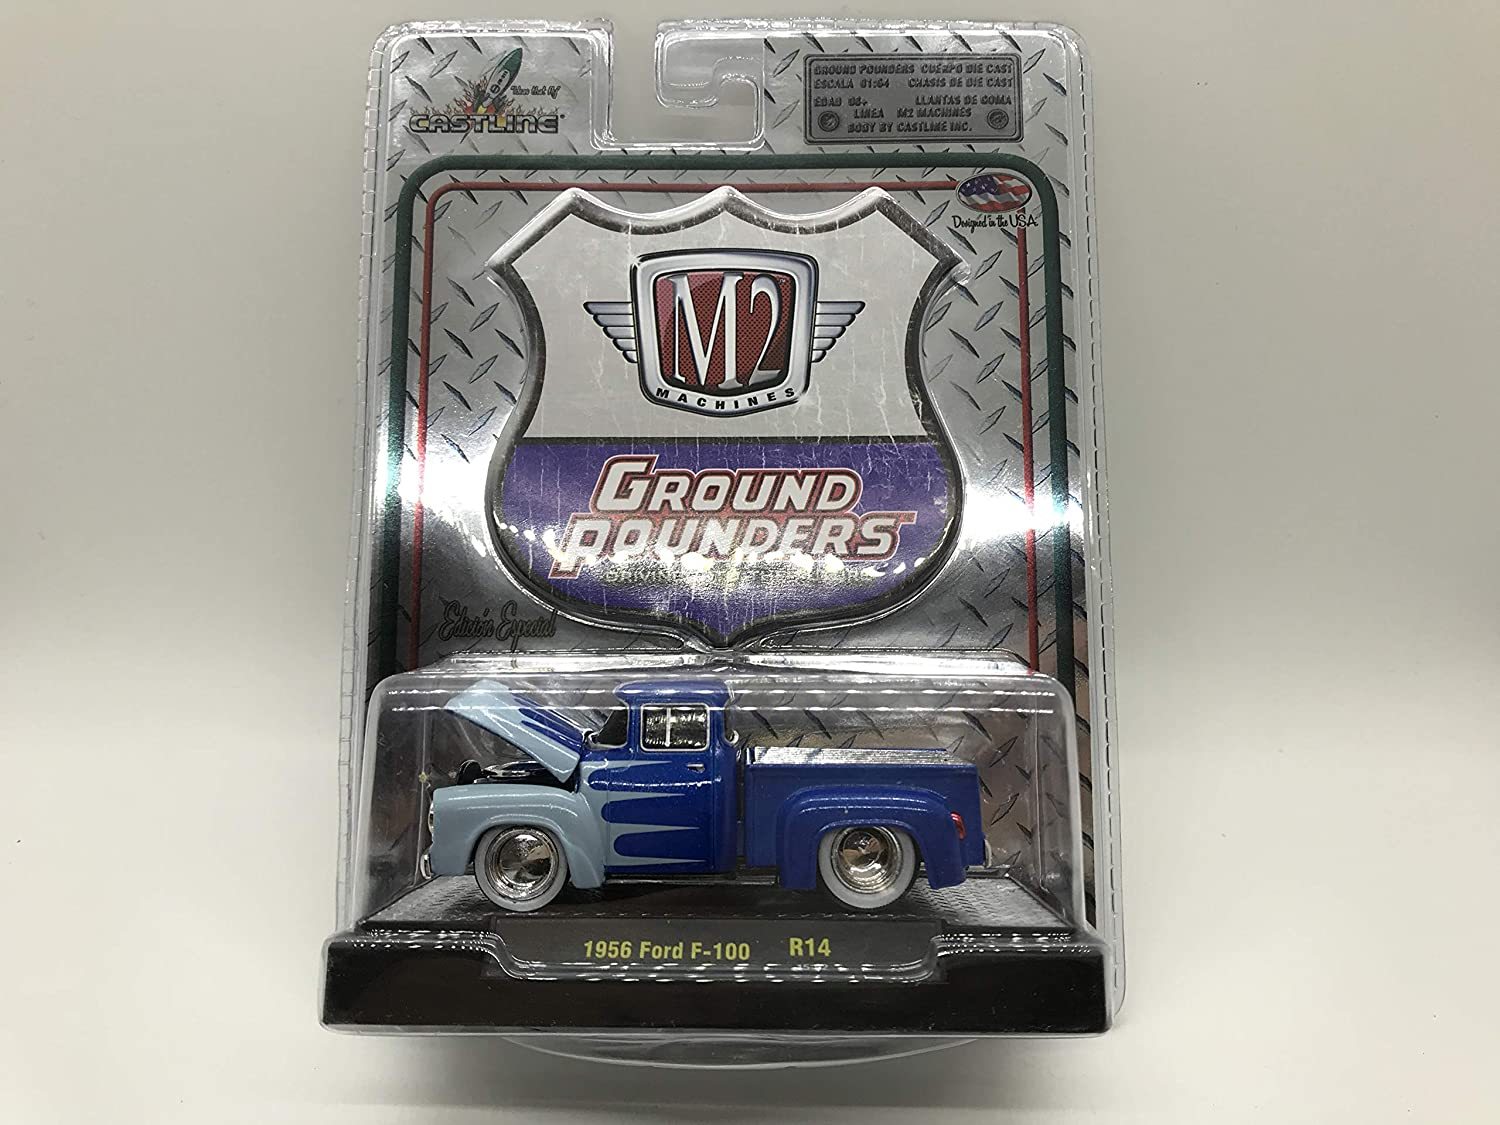 M2 Machines by M2 Collectible Ground Pounders 1956 Ford F-100 1:64 Scale R14 15-02 Blue//Light Blue Details Like NO Other!